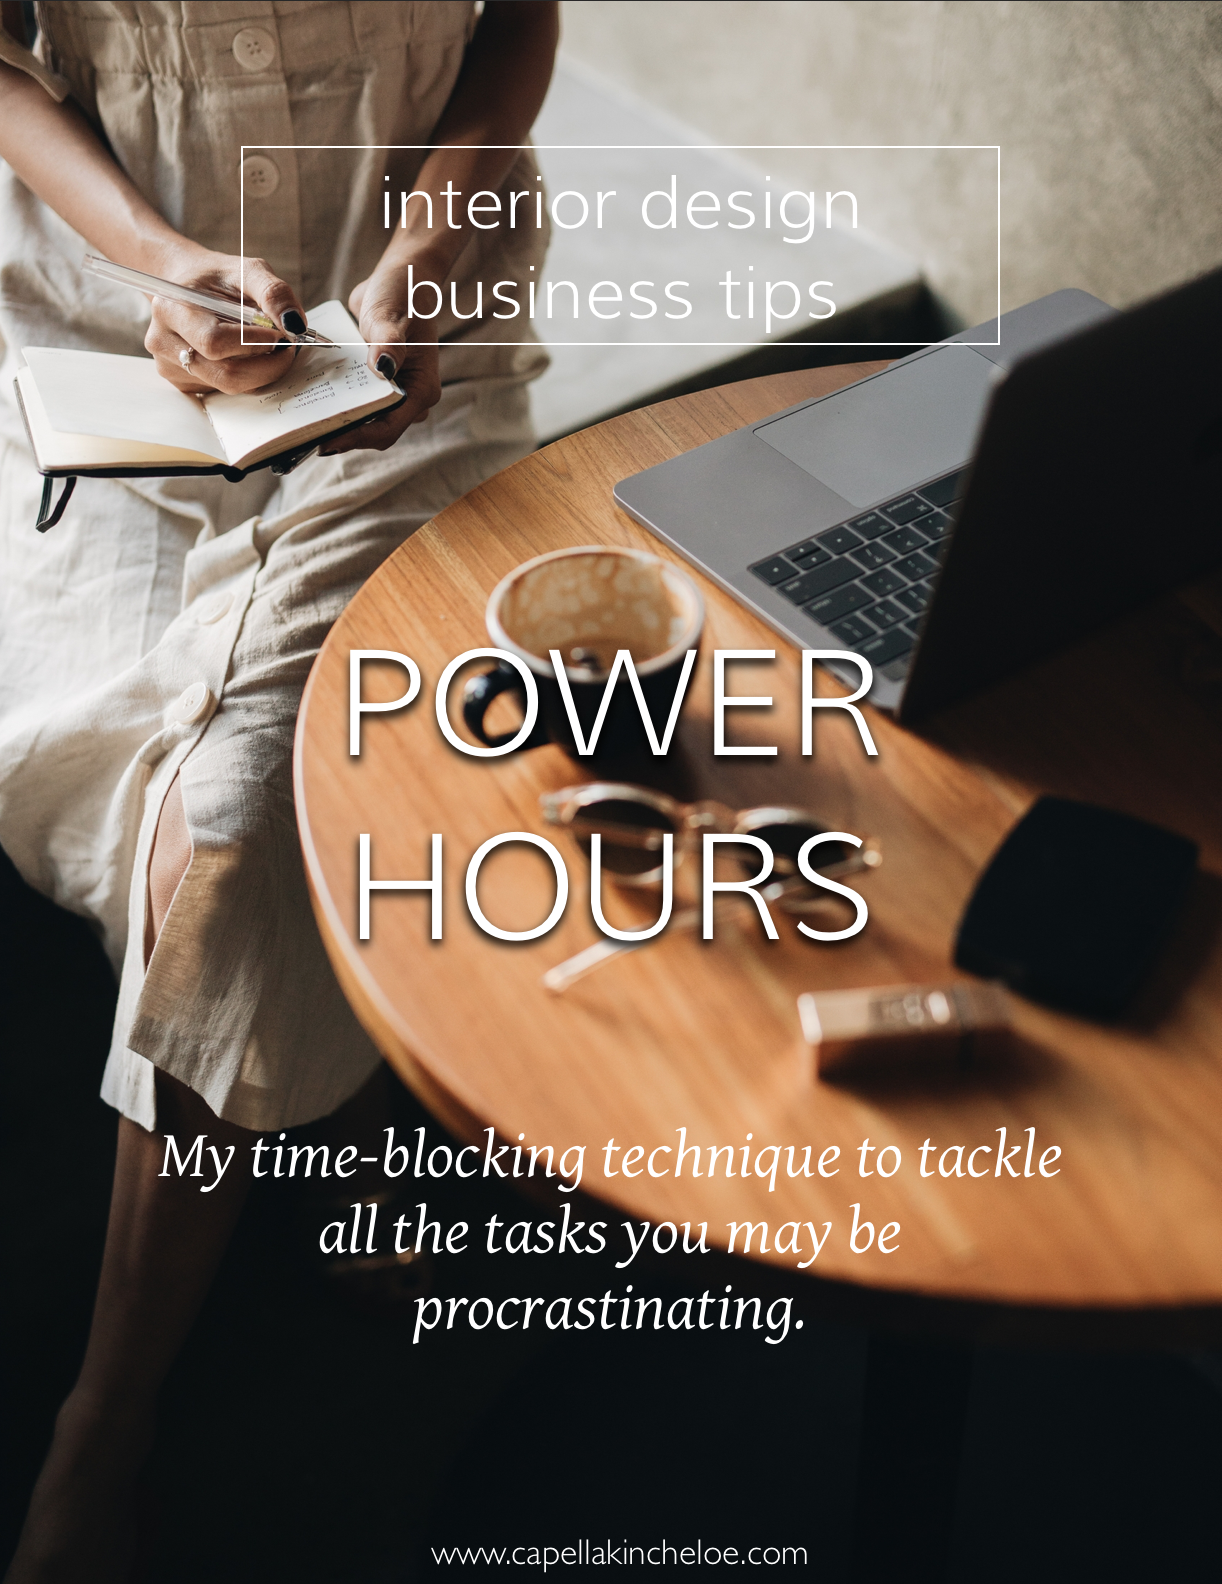 My secret to tackling the tasks and creating a system to accomplish more in less time. #interiordesignbusiness #CKTRADESECRETS #InteriordESIGNBUSINESSSYSTEMS